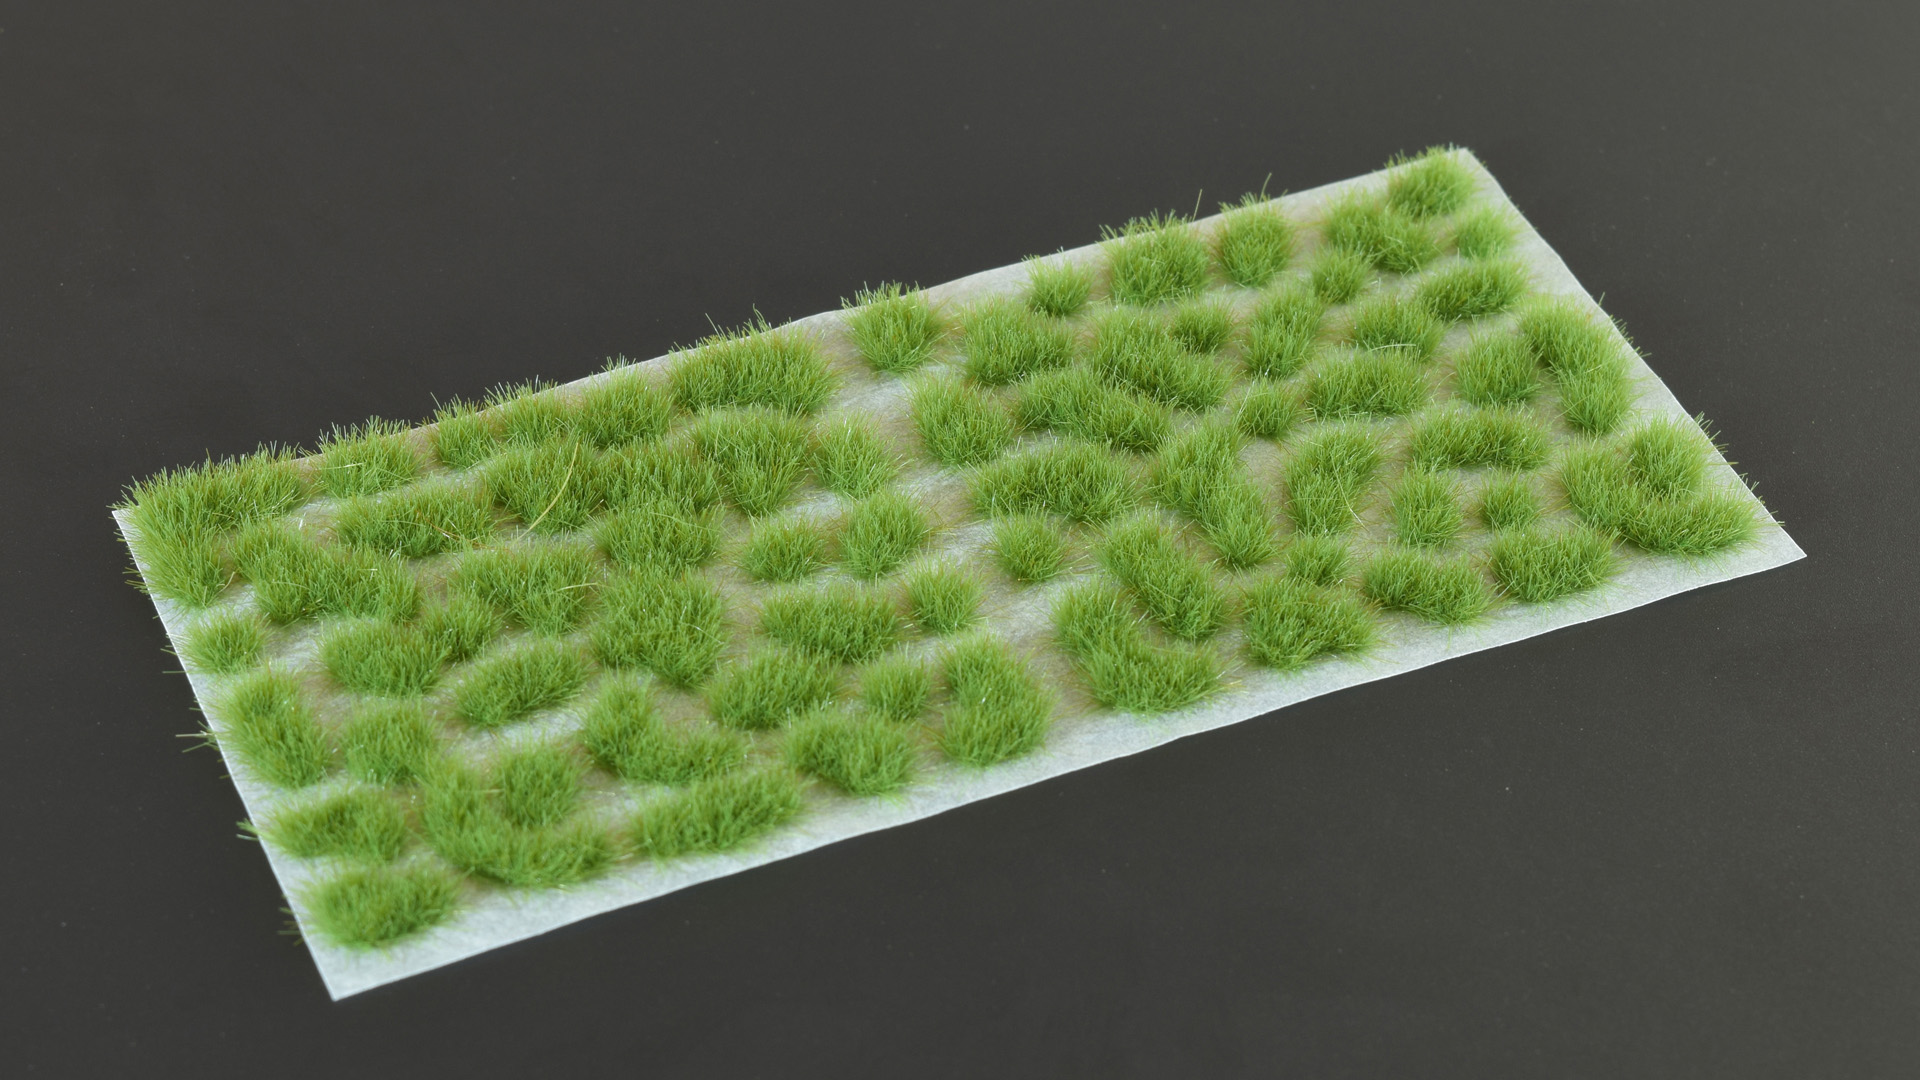 Green 4mm Tufts (Gamer's Grass Gen II) Wild